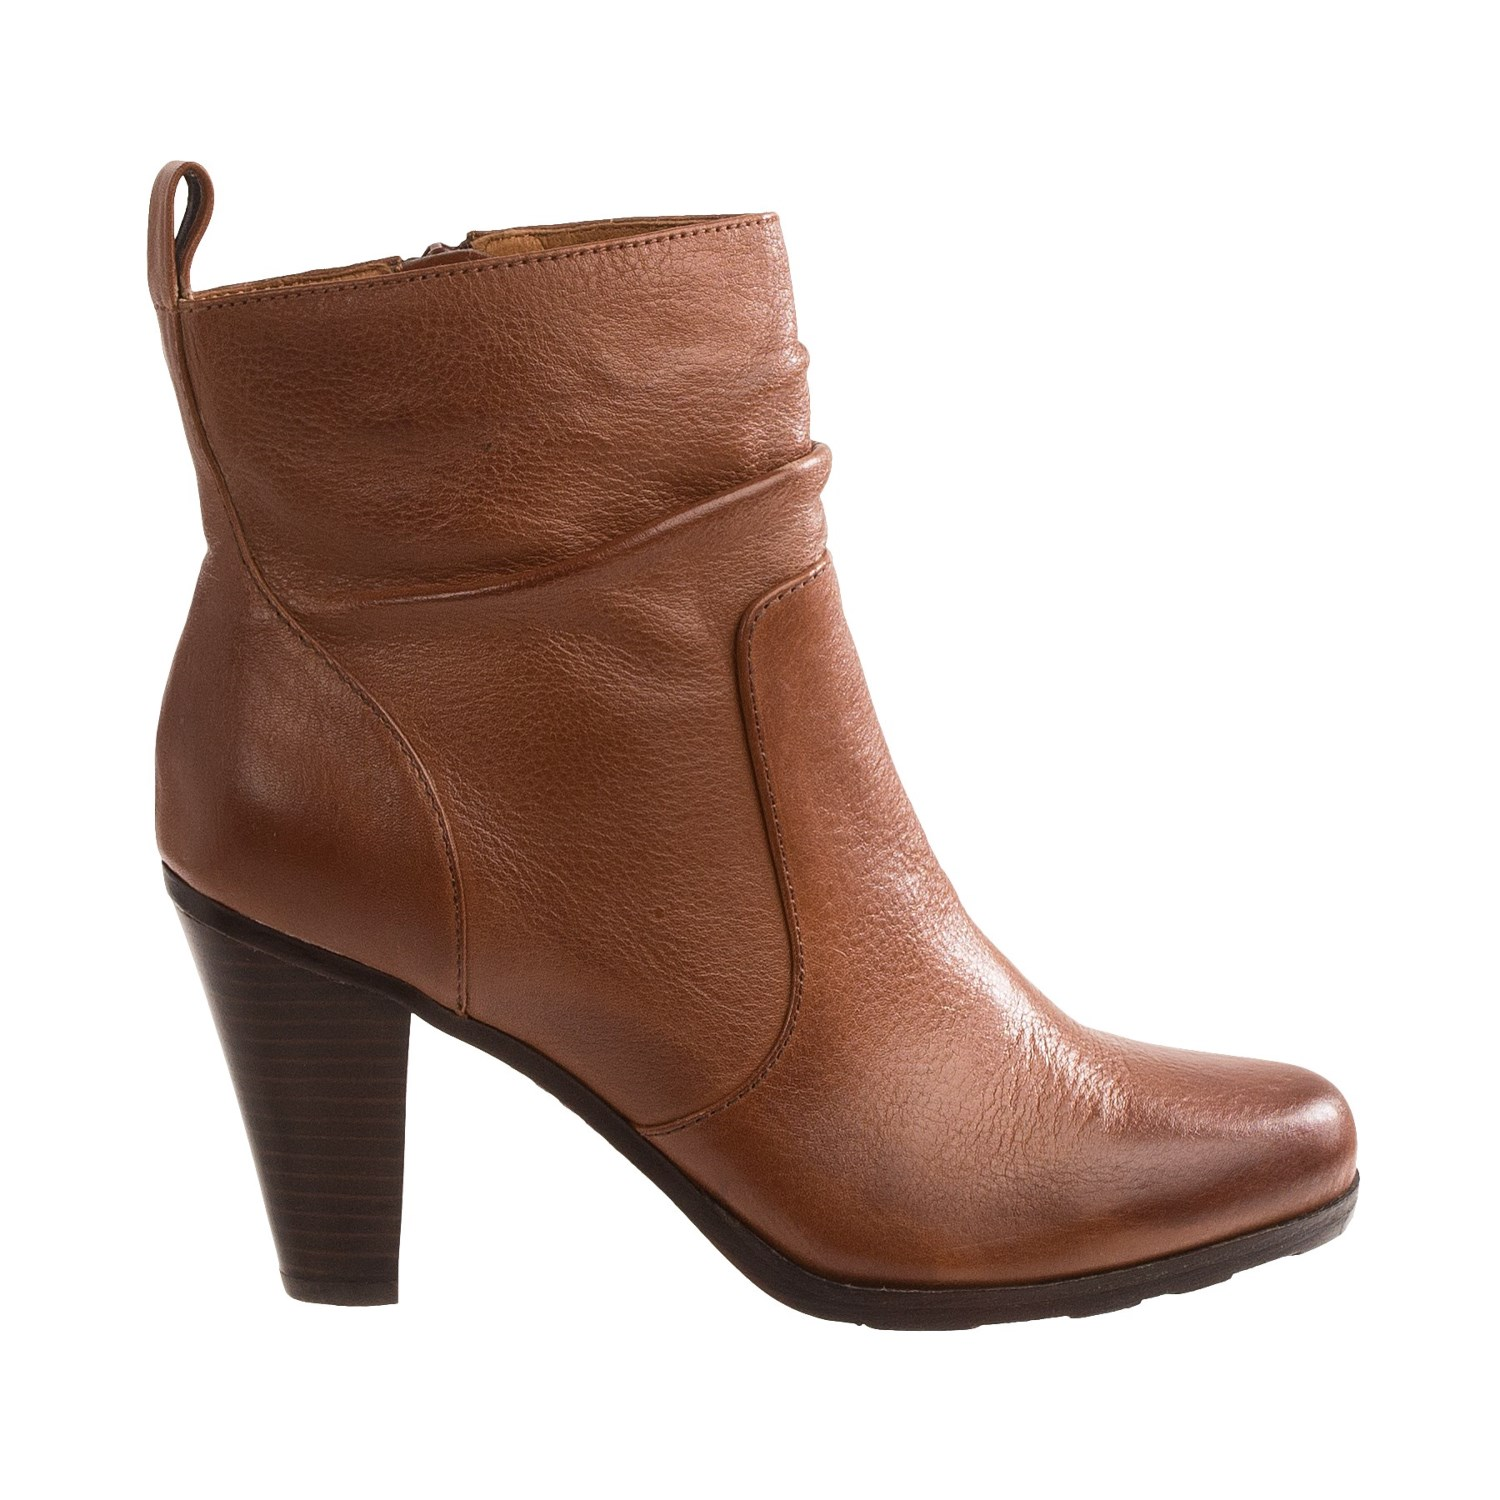 See all results for sofft boots. Söfft Sofft - Womens - welling. by Söfft. $ - $ $ 49 $ 97 Prime. FREE Shipping on eligible orders. Some sizes/colors are Prime eligible. out of 5 stars Product Description A modern take on the iconic Chelsea boot, with a chic block heel.